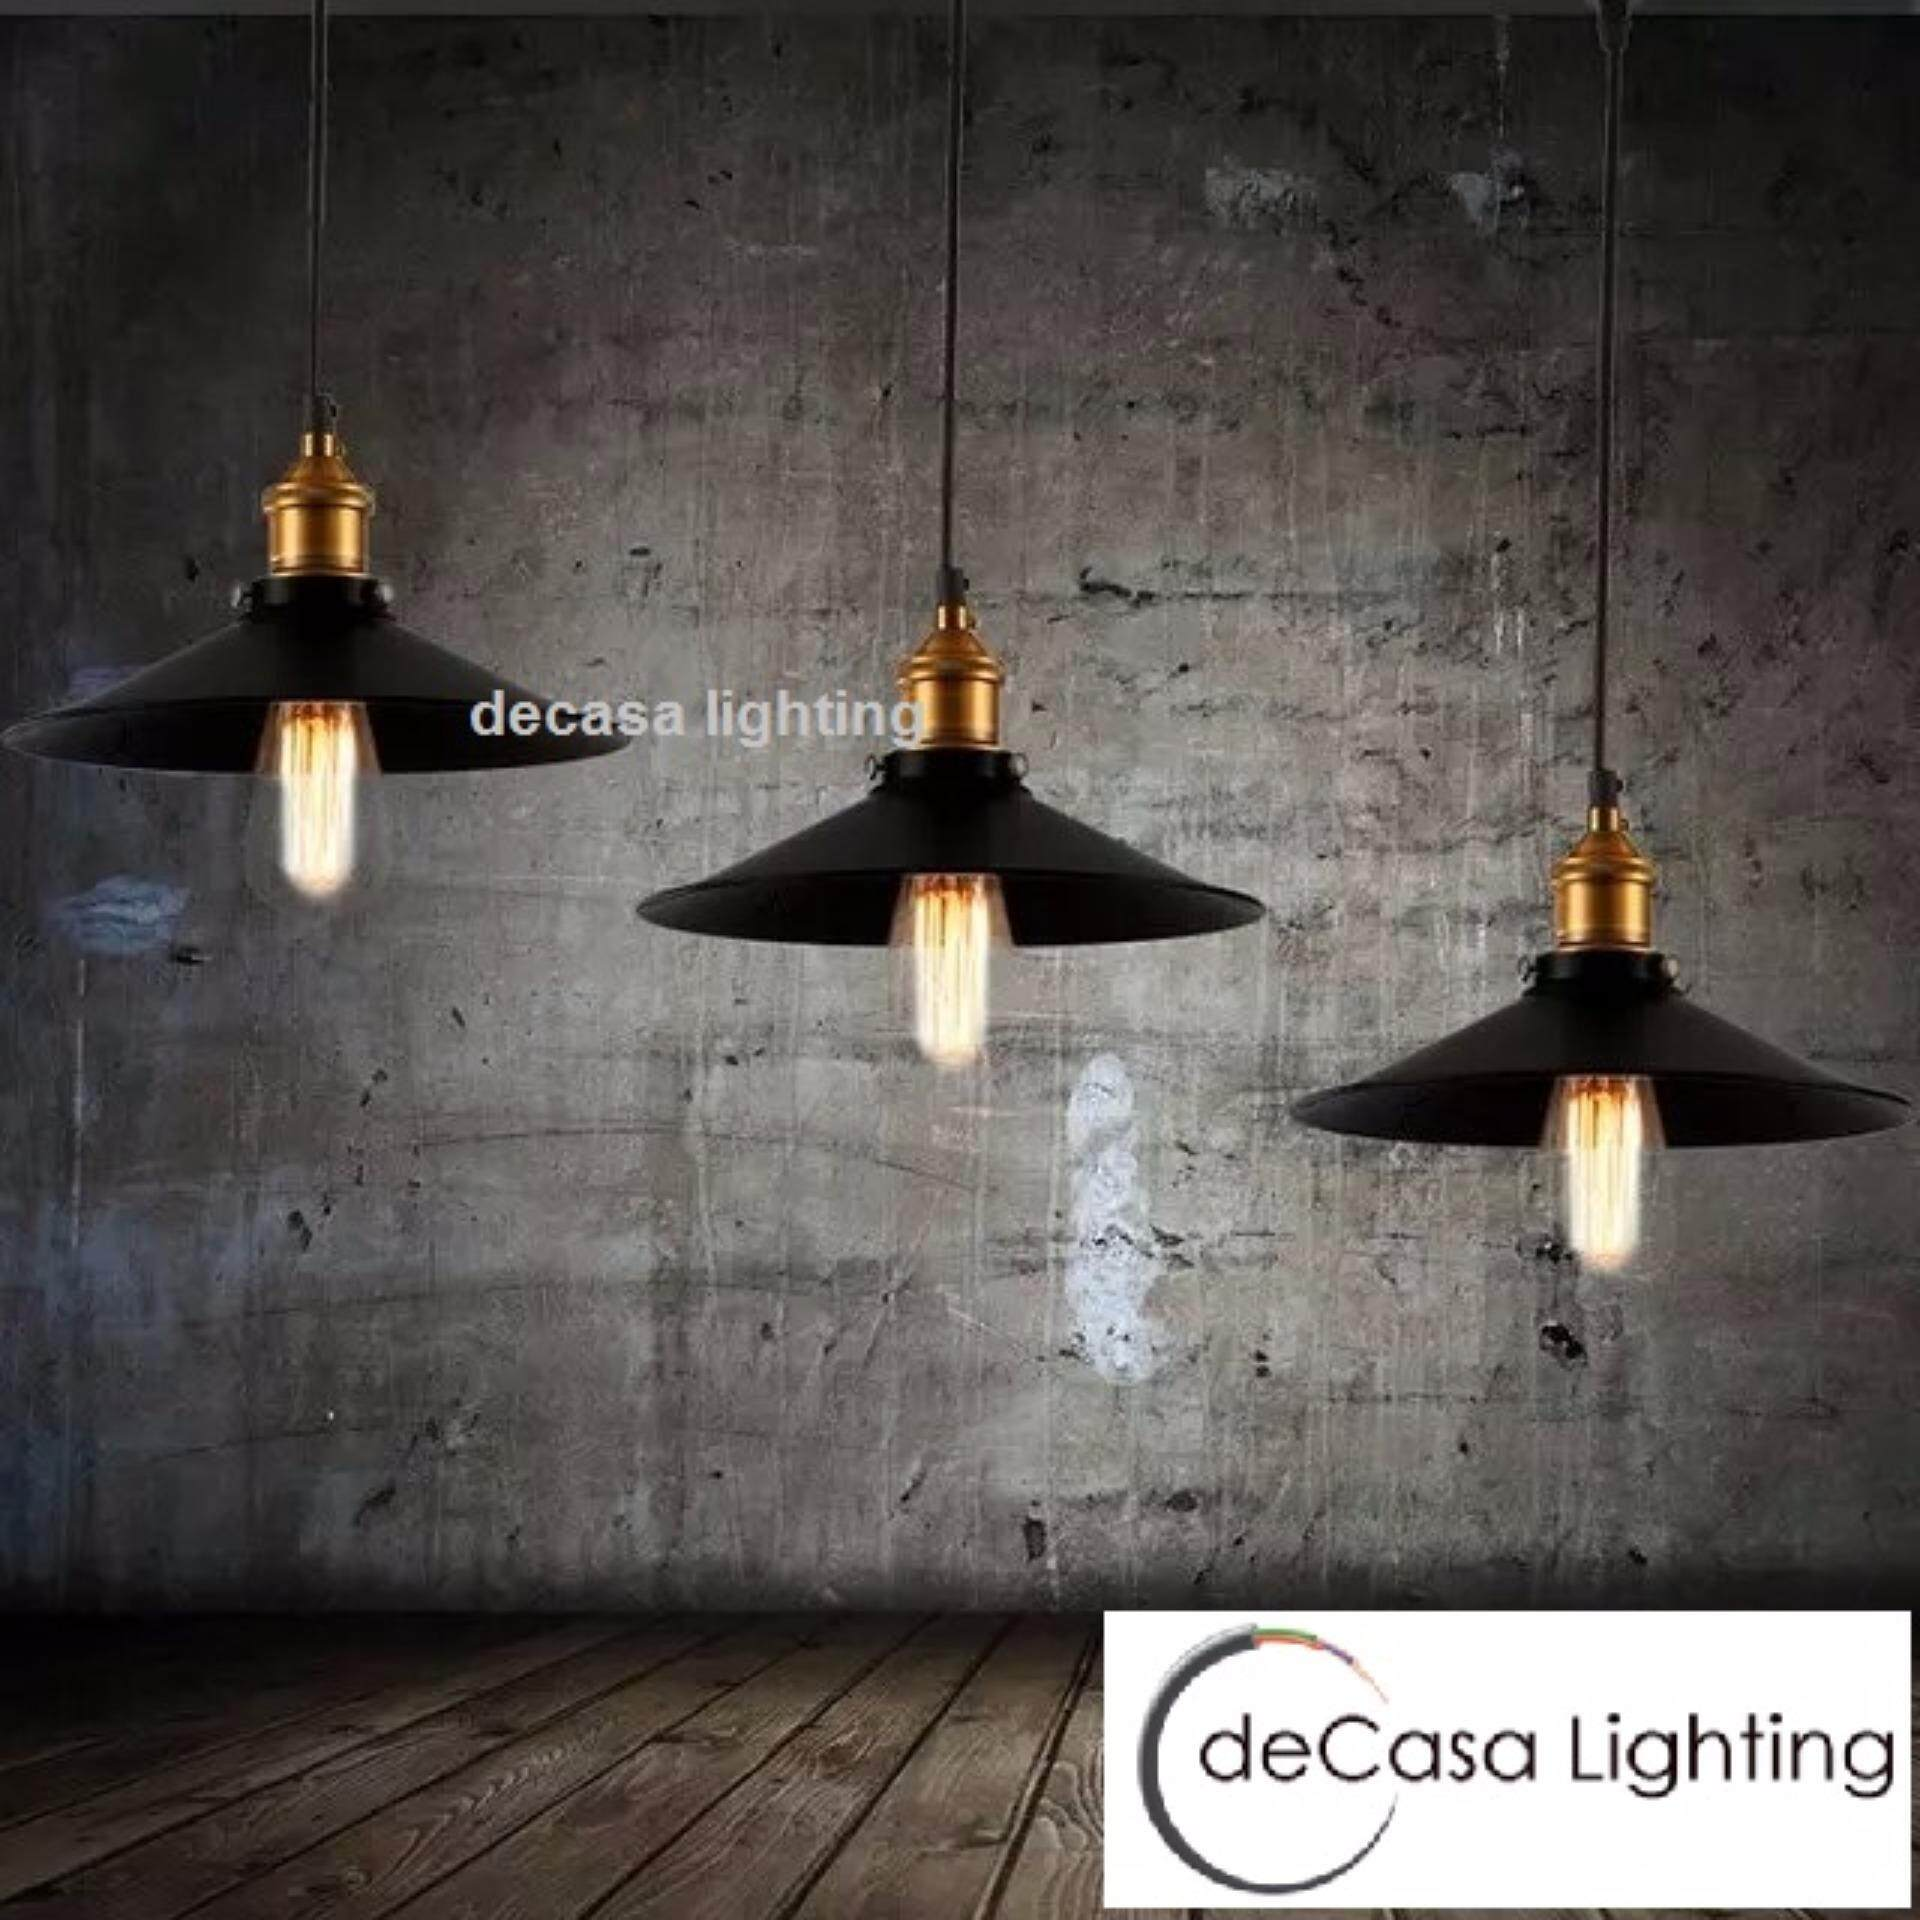 DECASA Hot Item Best Seller Basic E27 Holder Hanging Simple Loft Designer Decorative Pendant Light - Set Of 3 With Long Based